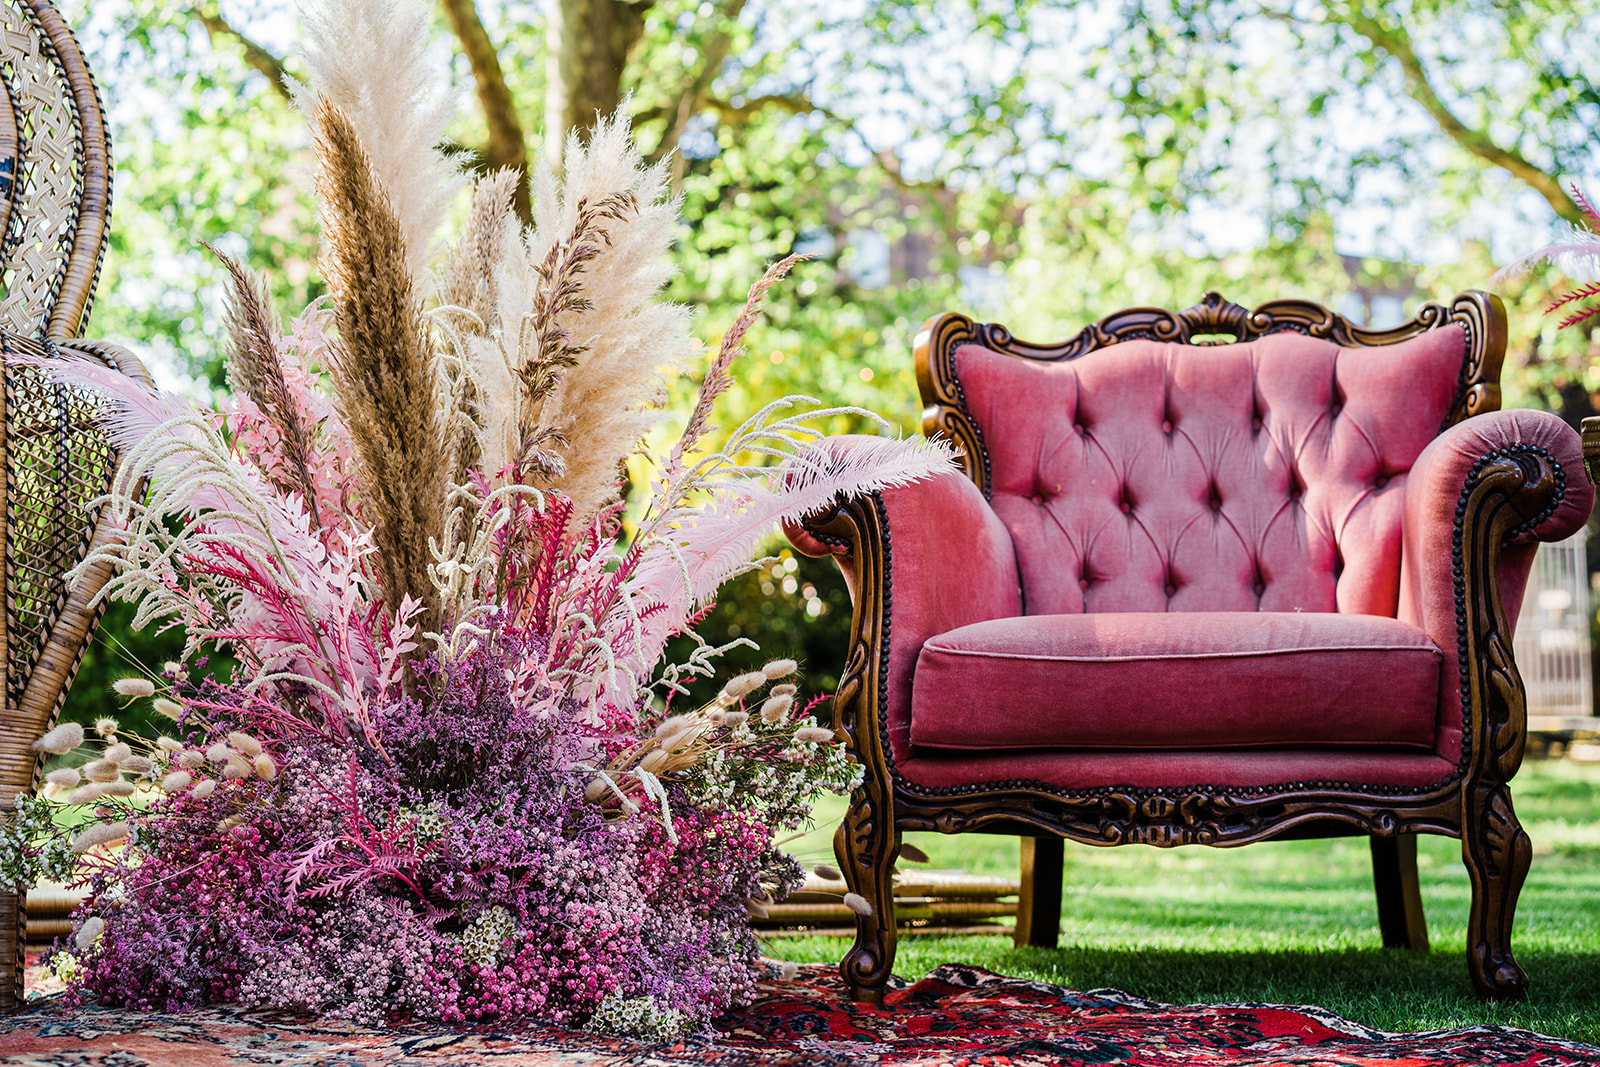 Chair, feathers, scenery